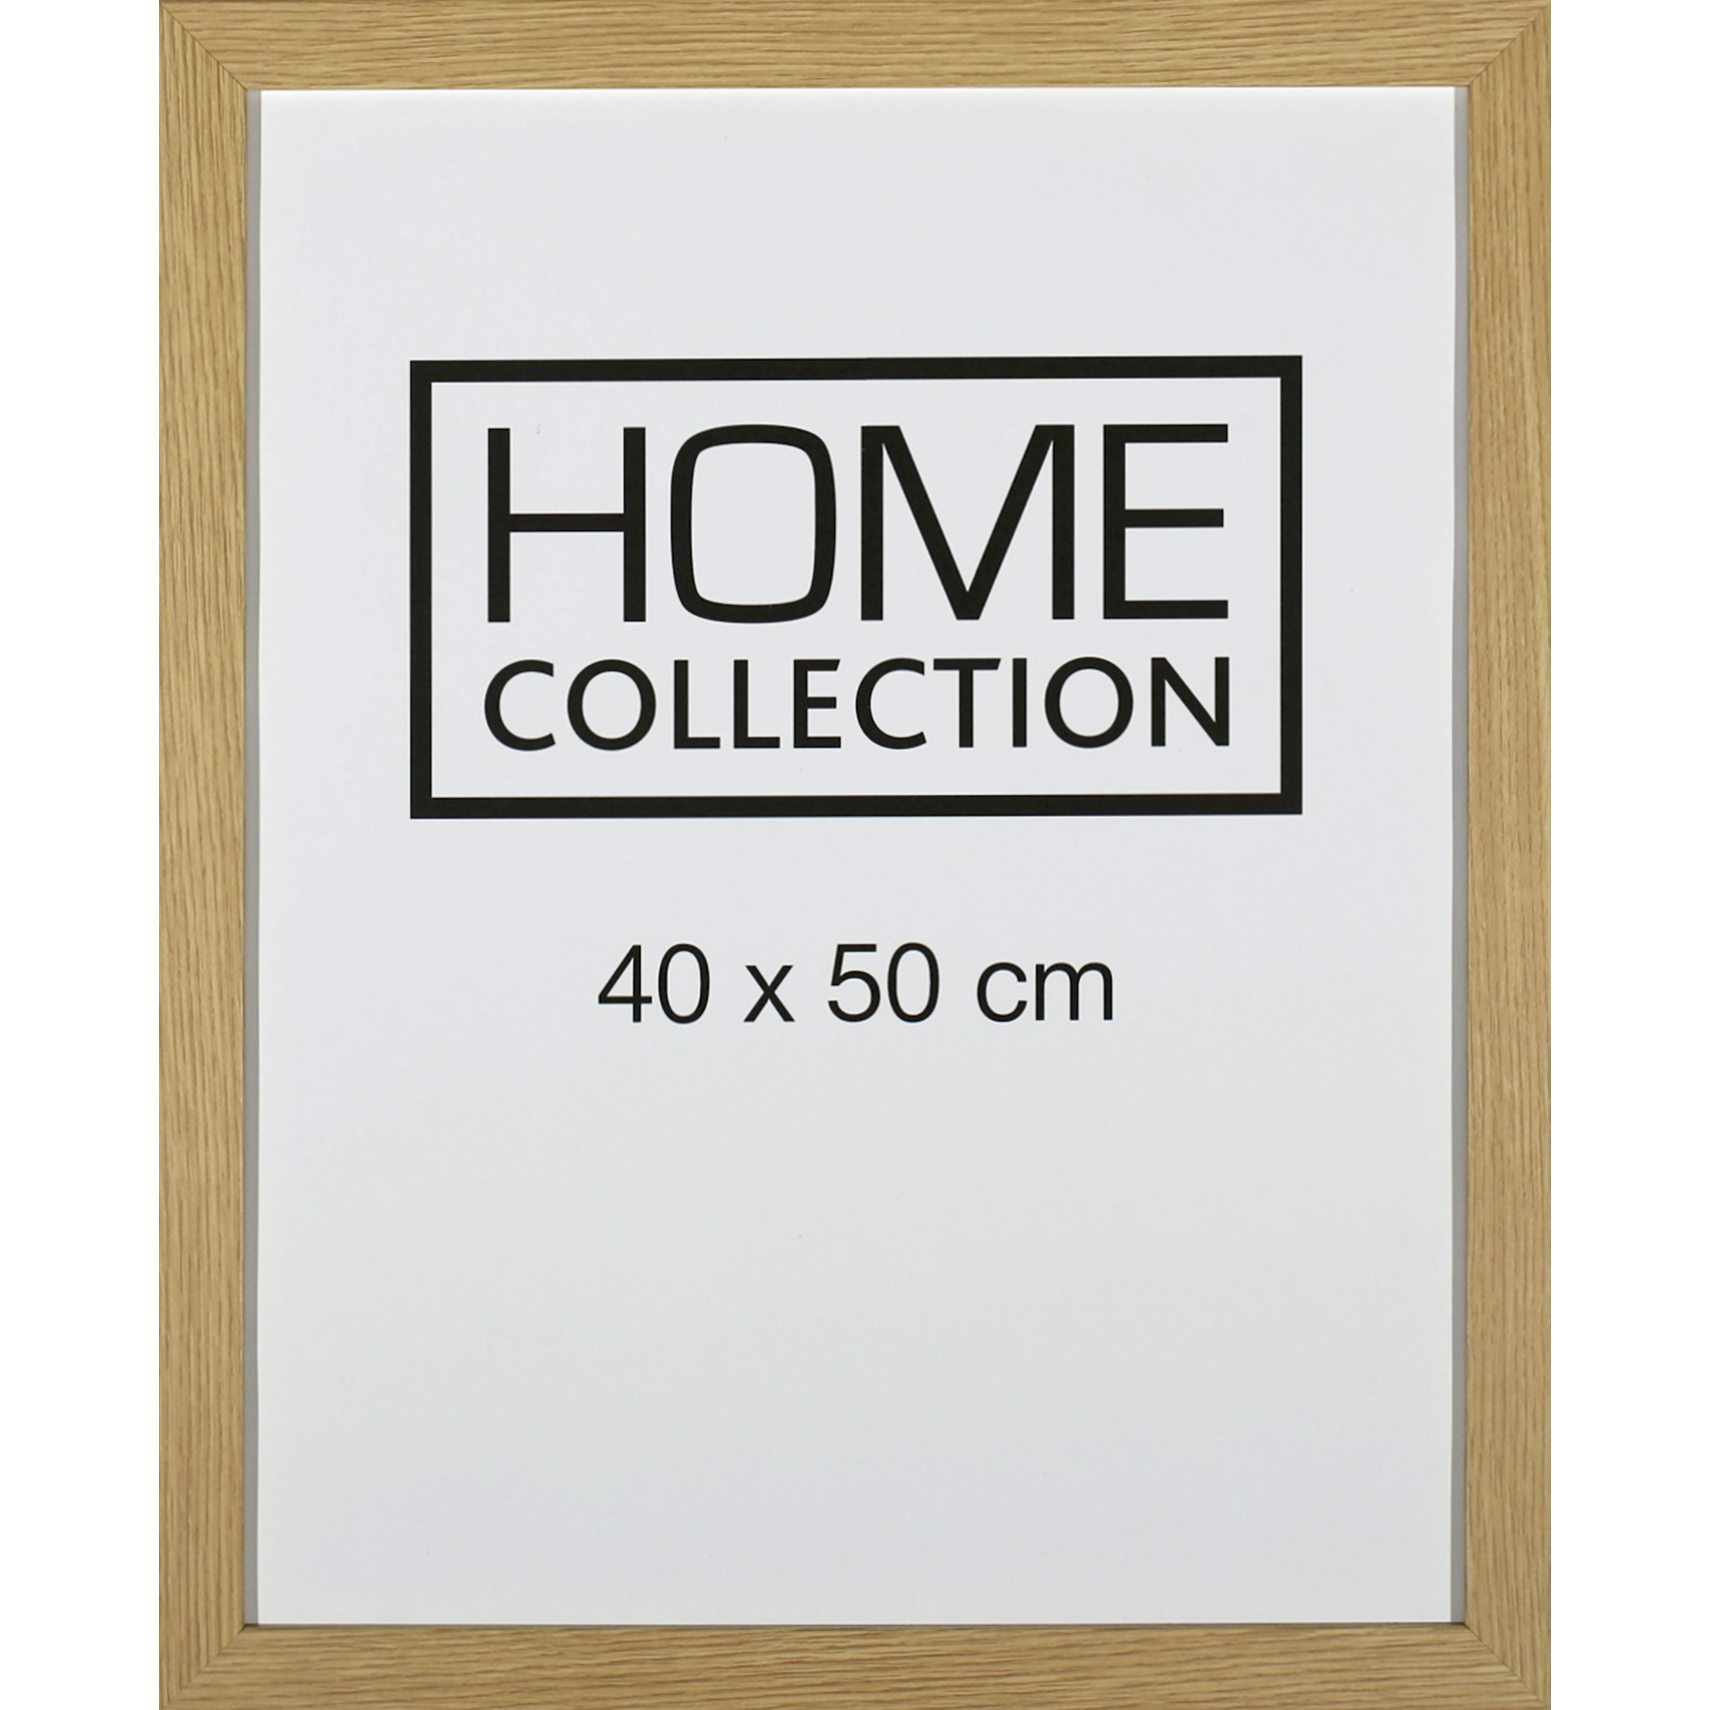 HOME COLLECTION Ramme 40 x 50 x 2 cm - Egetræ ramme